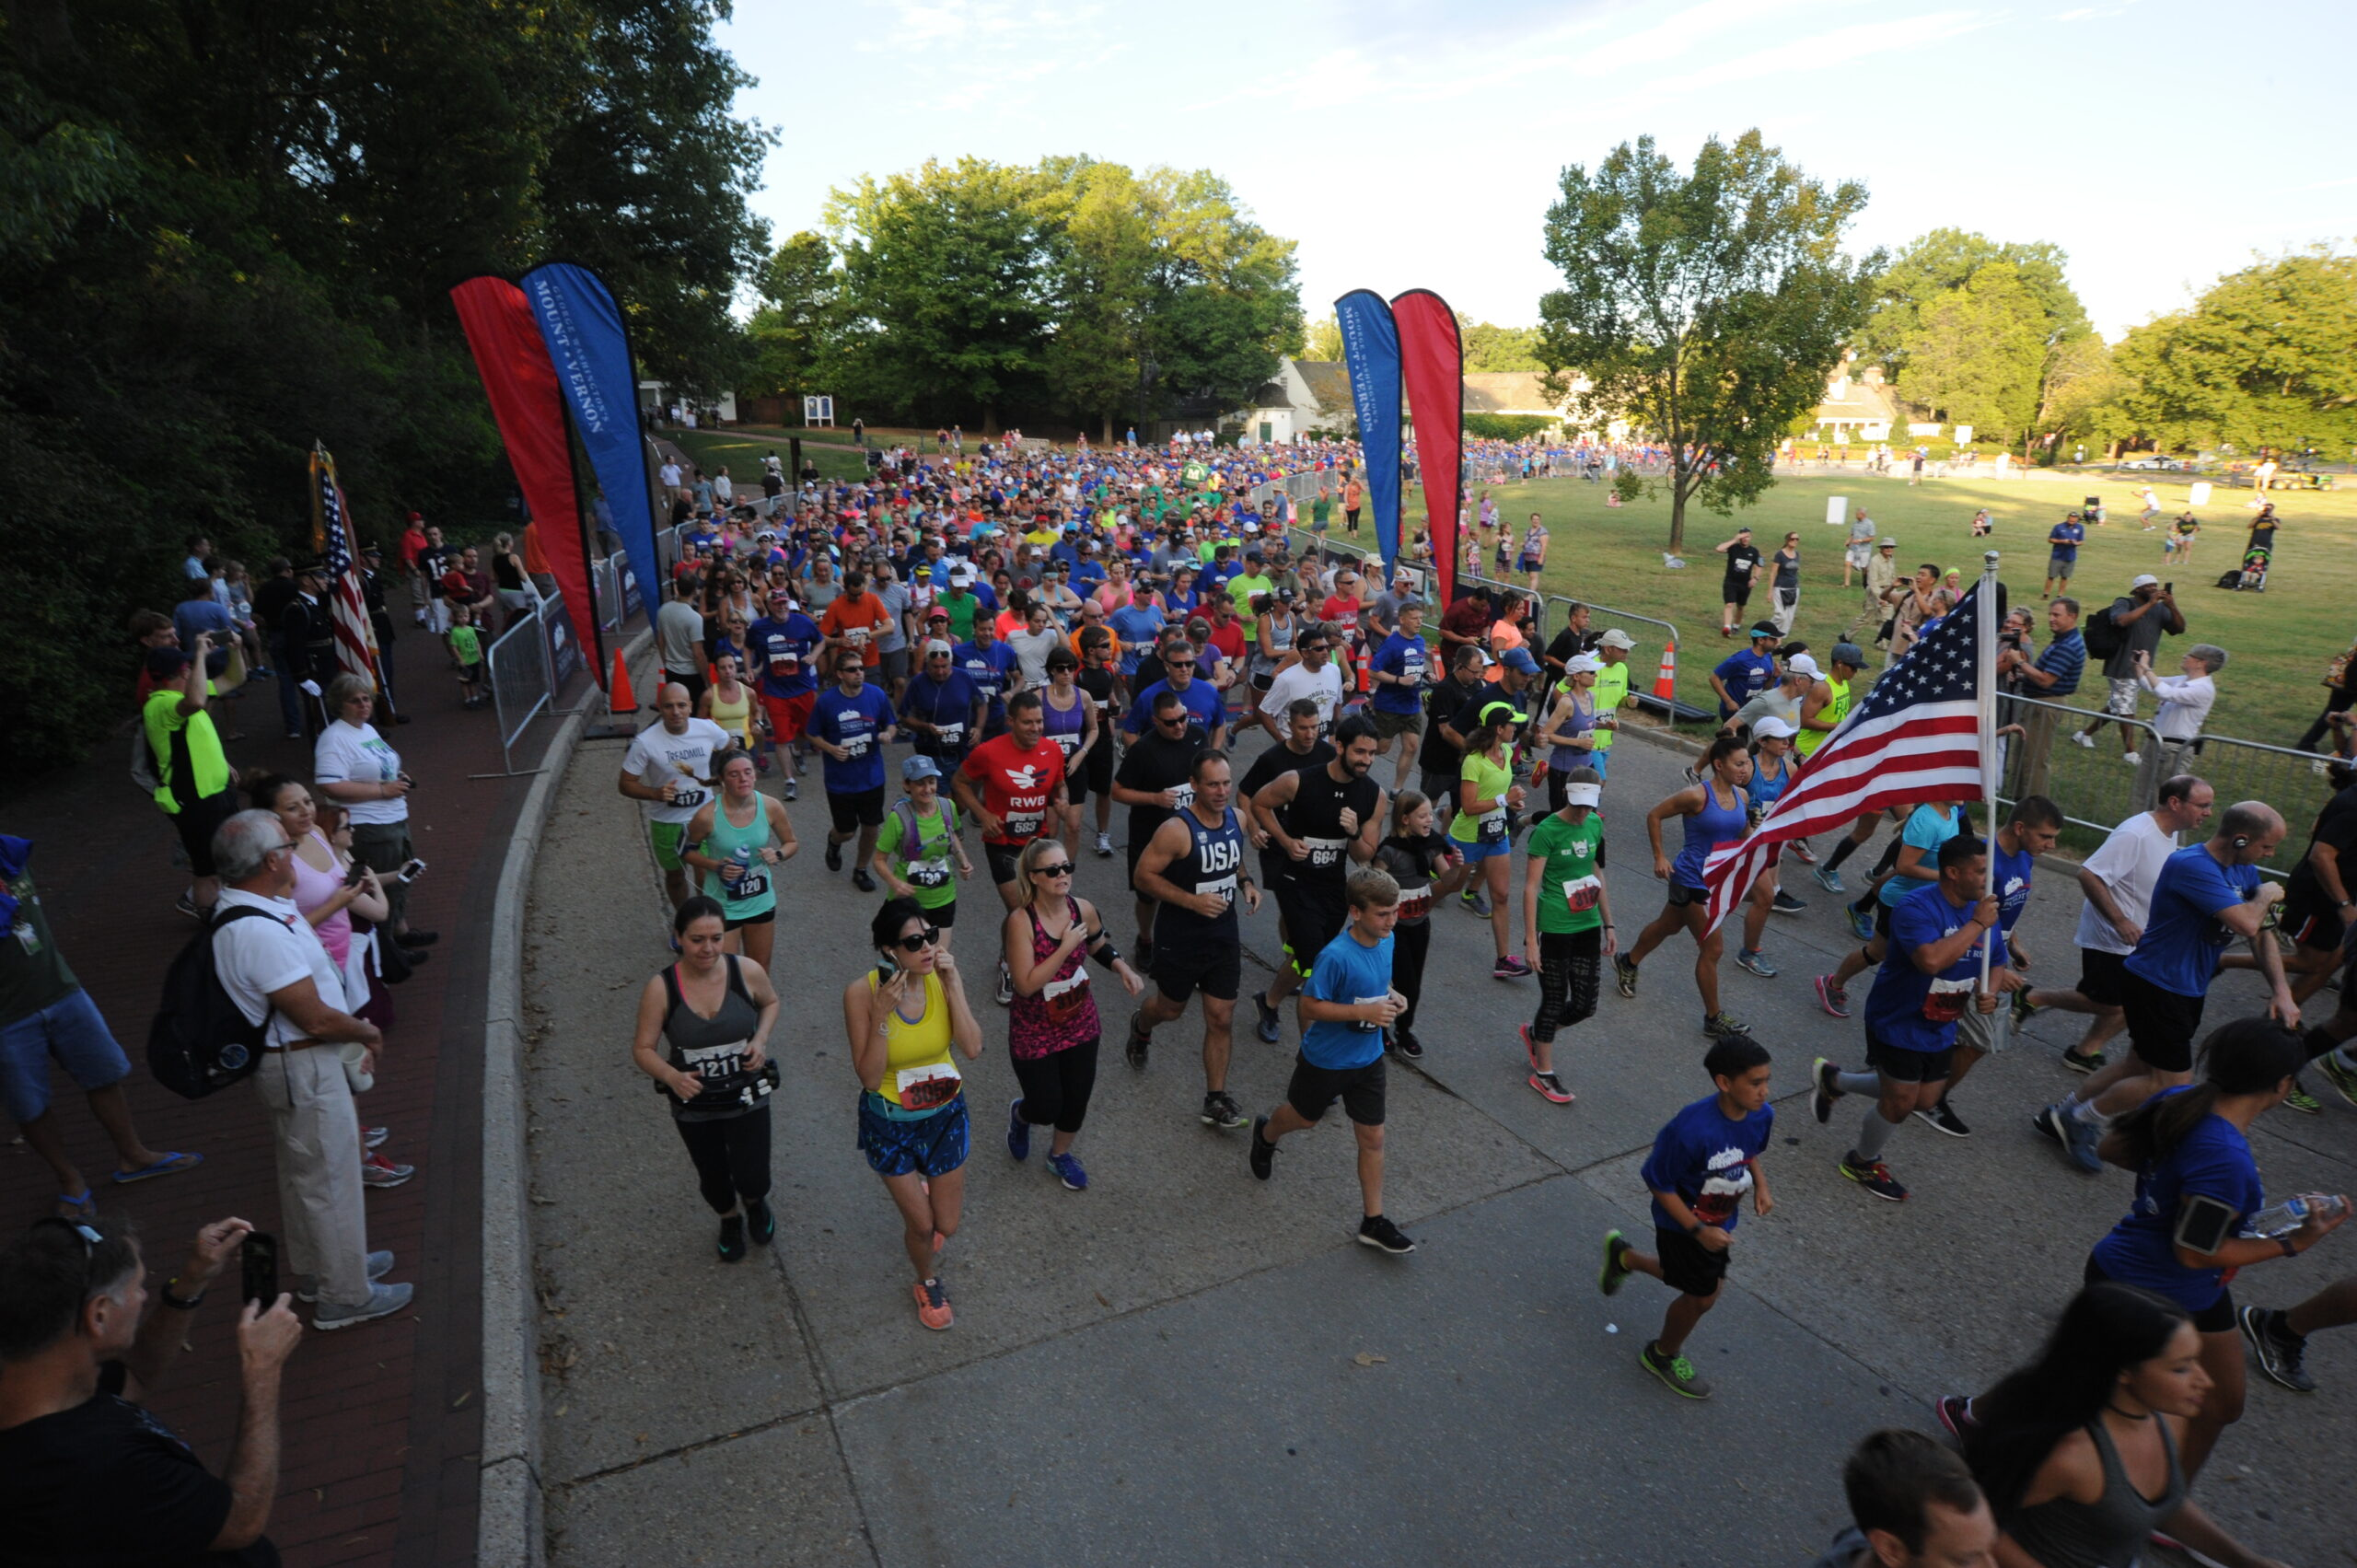 Register now to dash through history during the George Washington Patriot Run, a road race at the historic property of George Washington's Mount Vernon!